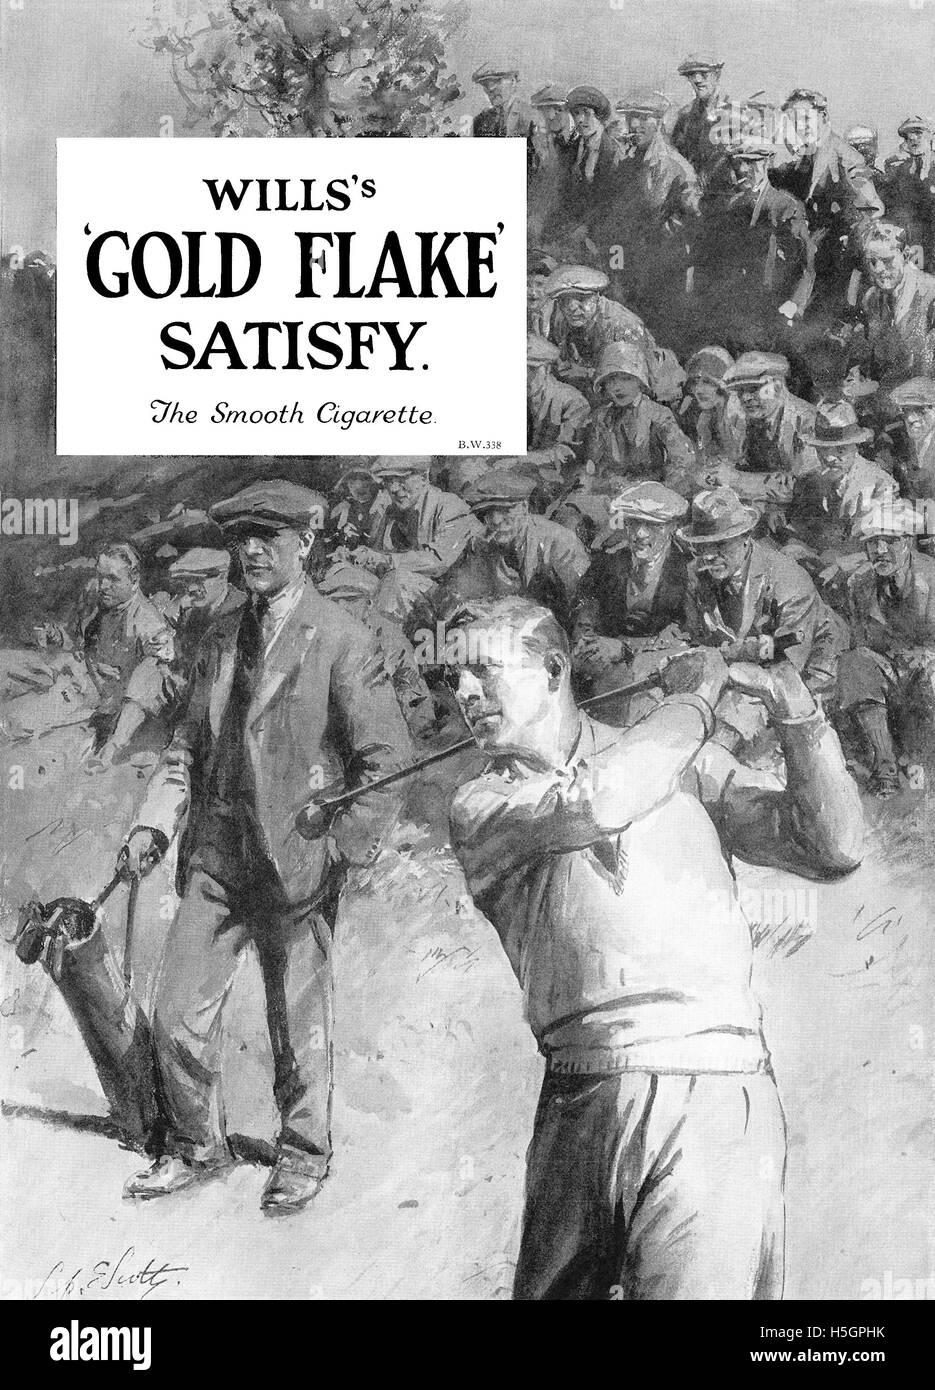 Vintage 1930 British advertisement for Will's Gold Flake cigarettes. - Stock Image